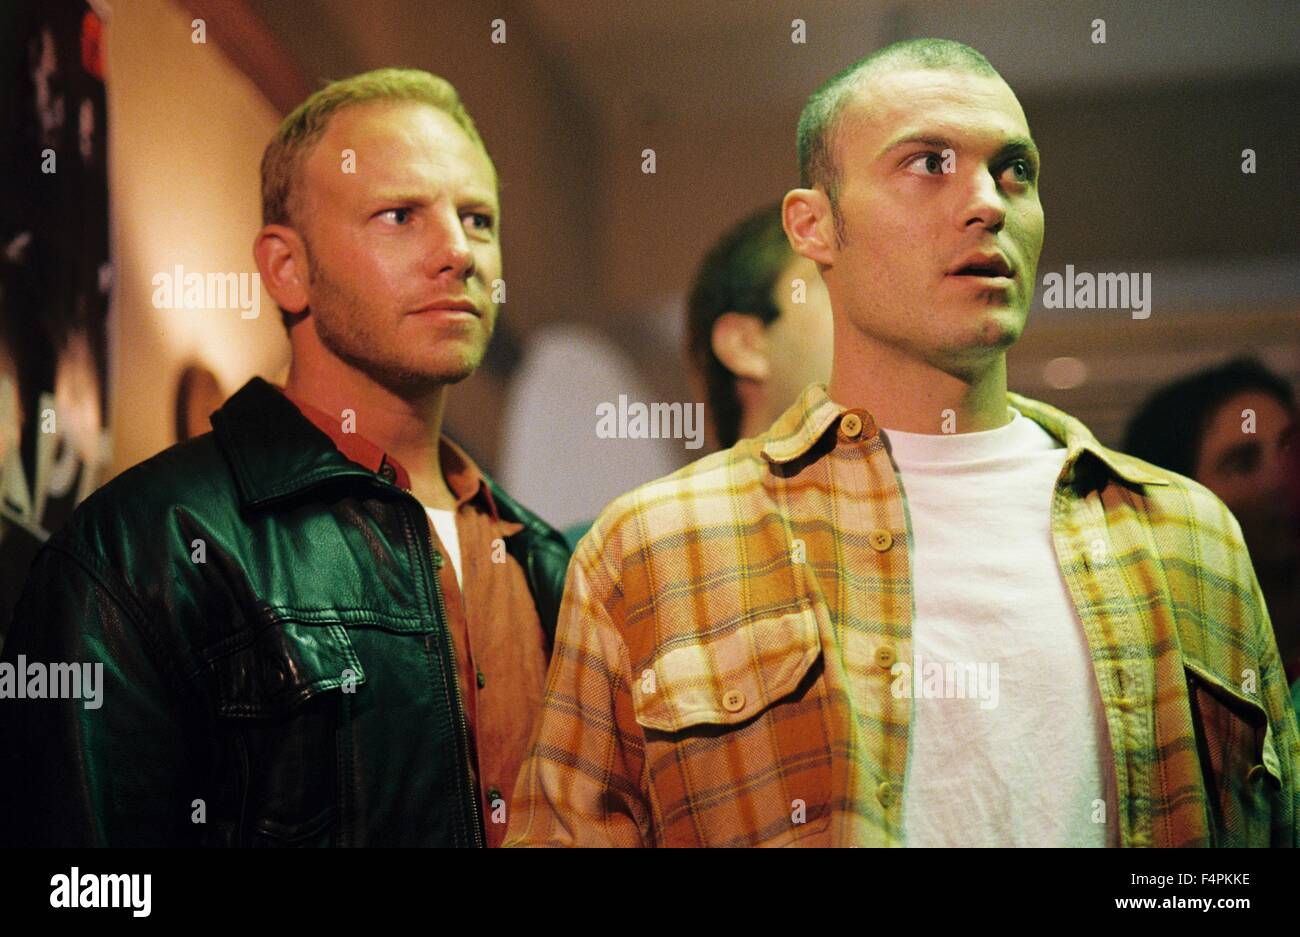 Ian Ziering and Brian Austin Green / Domino / 2005 directed by Tony Scott [New Line Cinema] - Stock Image